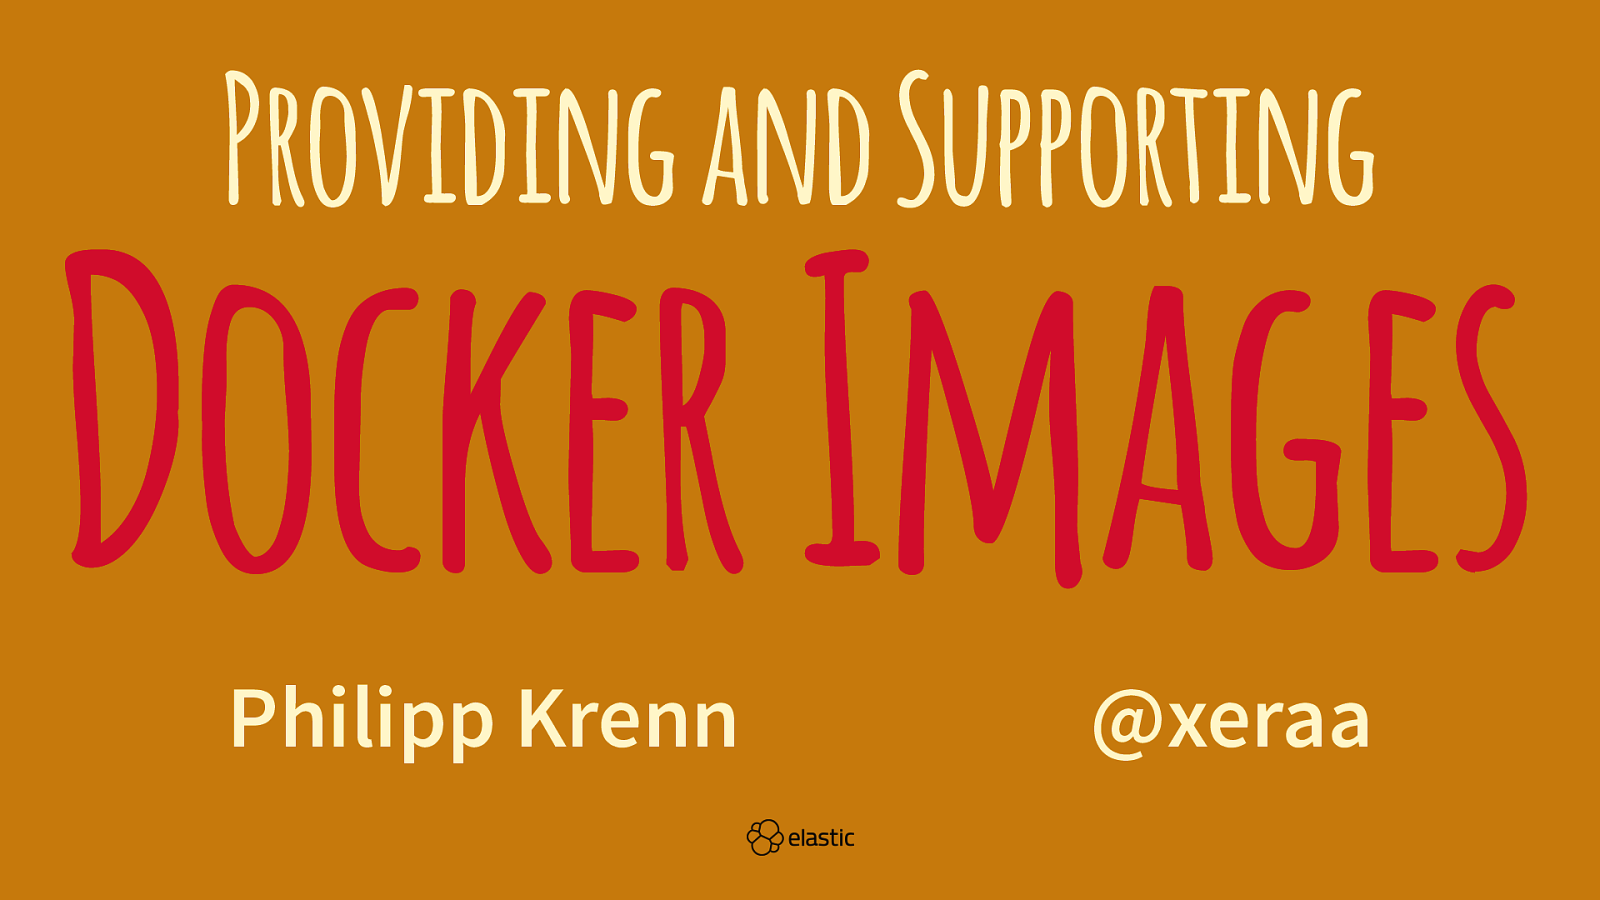 Providing and Supporting Docker Images